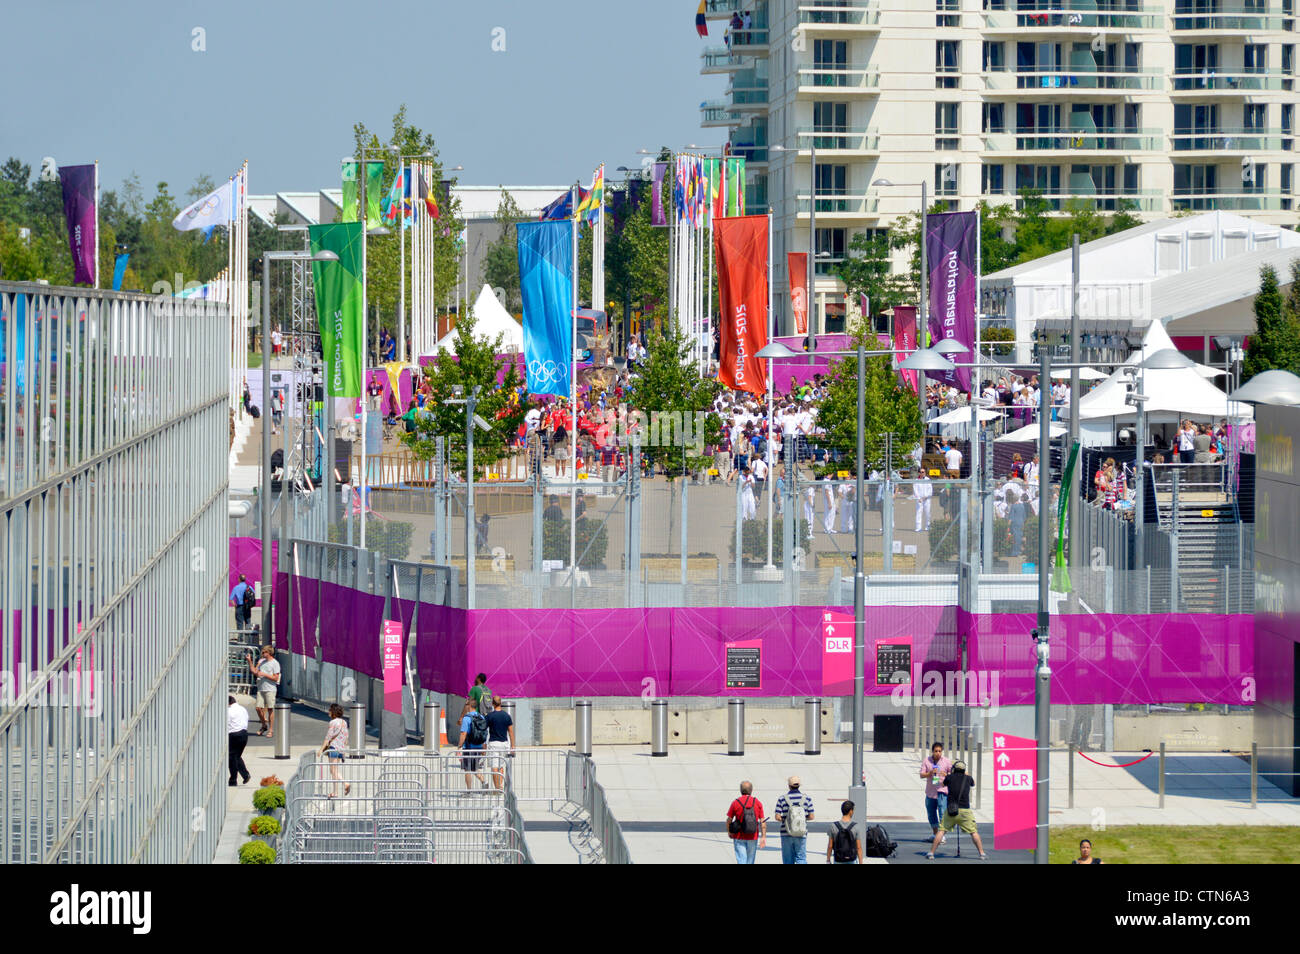 Athletes village & one of the accommodation blocks seen beyond security fencing at London 2012 Olympic Park - Stock Image